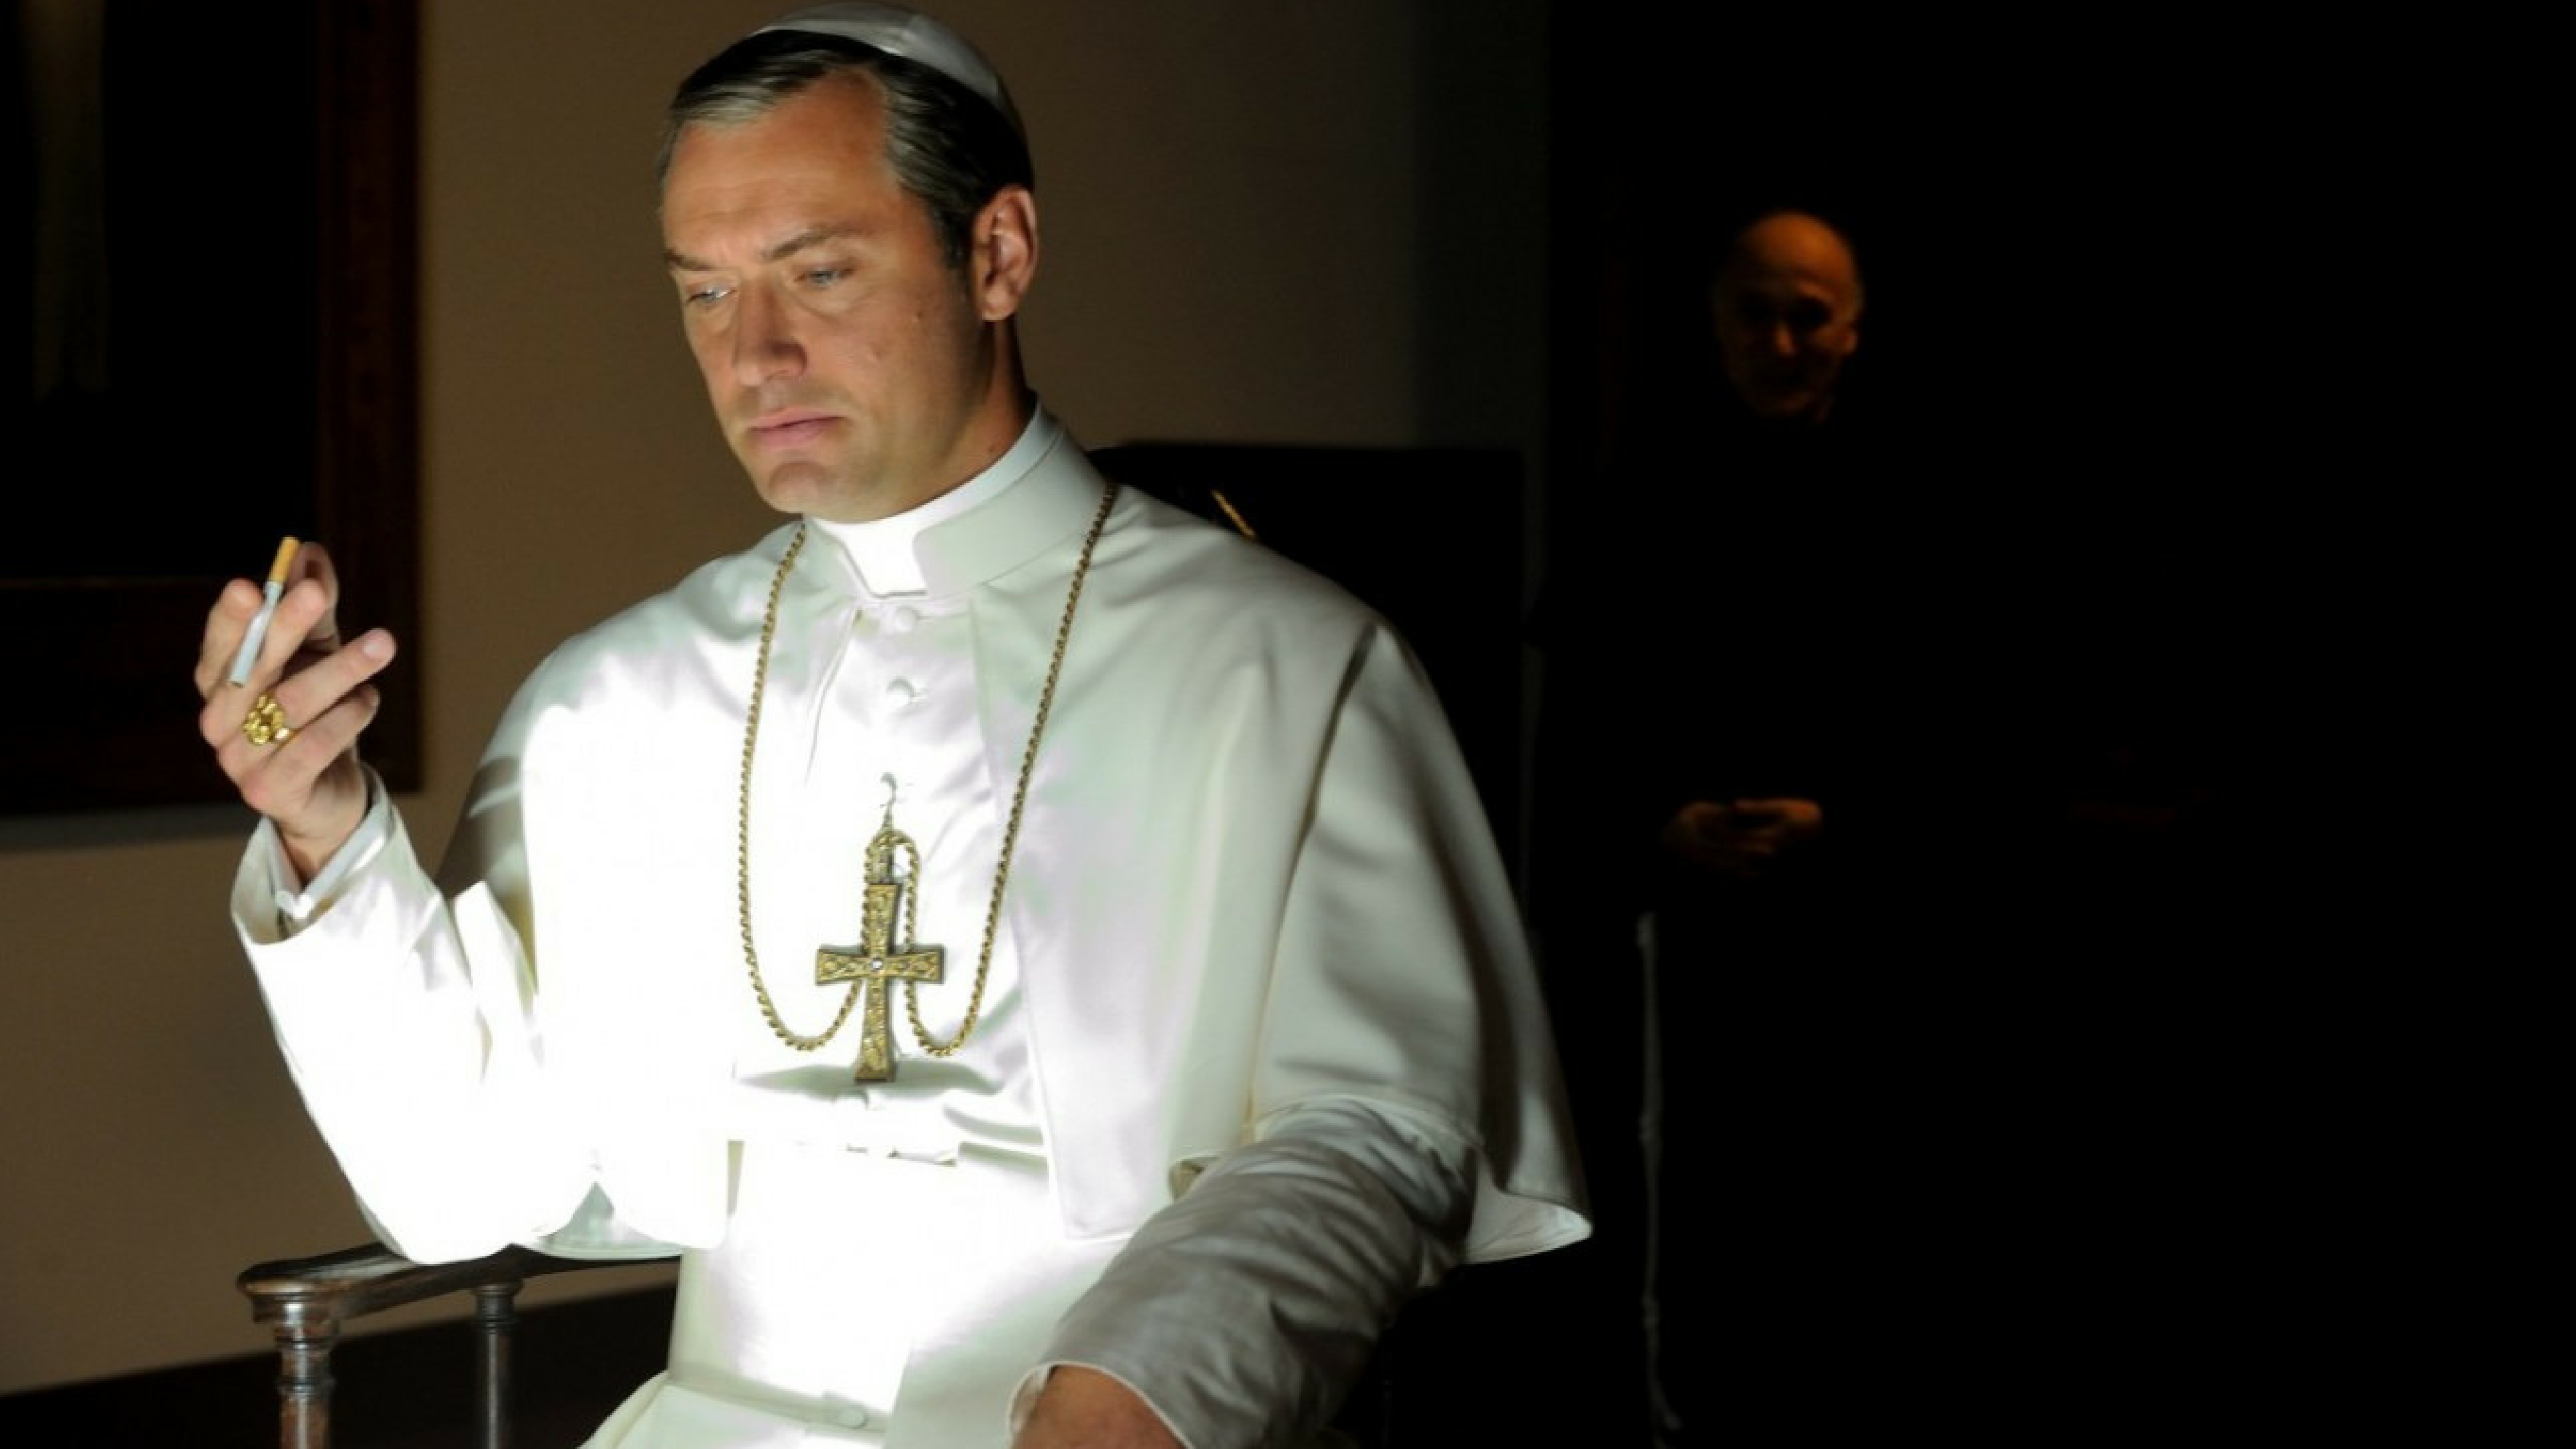 The Young Pope, la biografia dispotica di Paolo Sorrentino